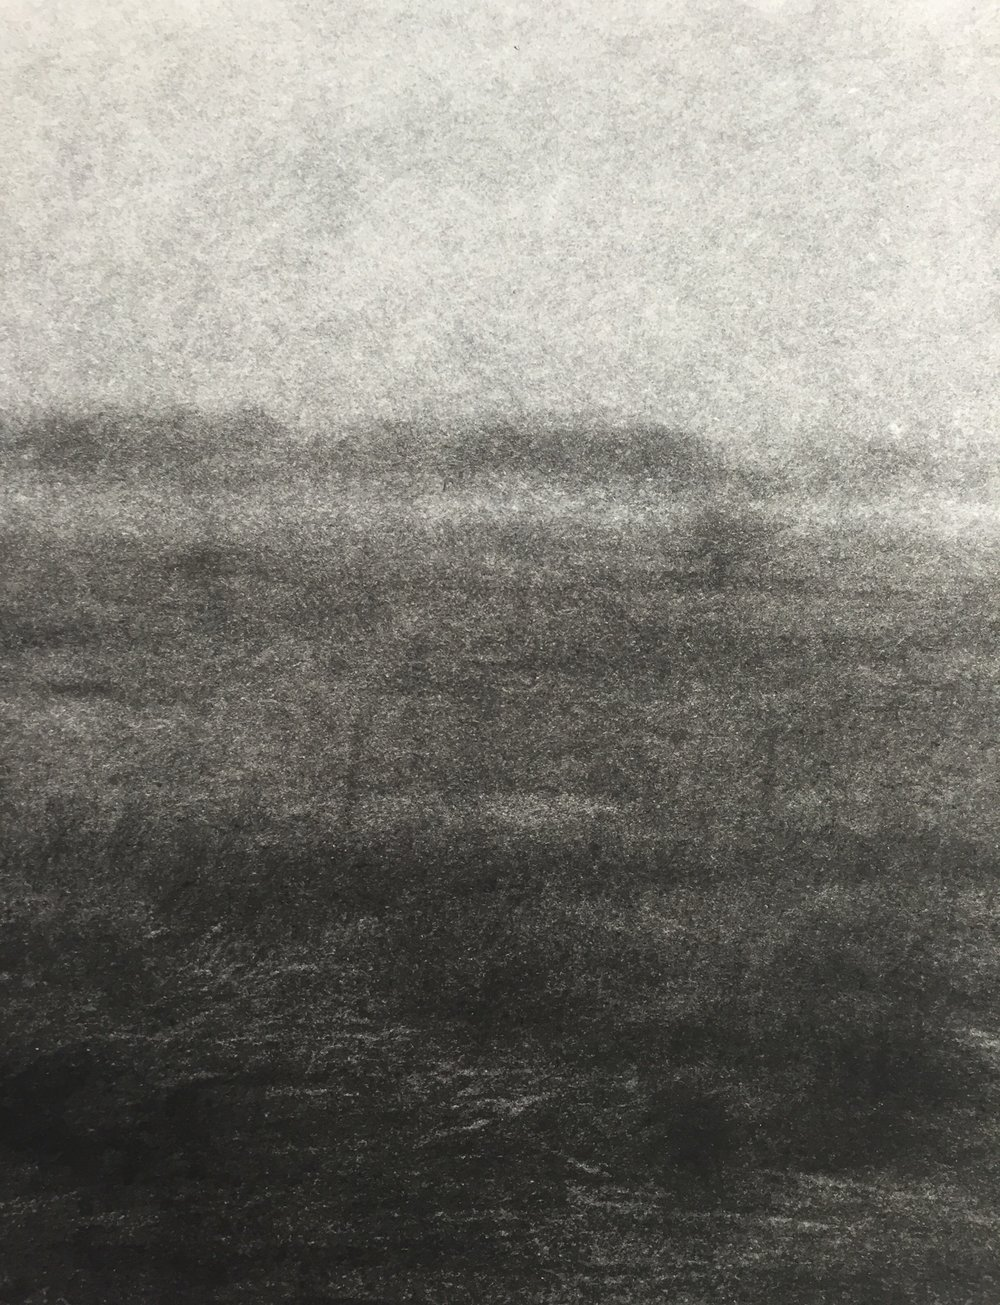 Amelia Carroll Artist Charcoal Drawing 2.JPG